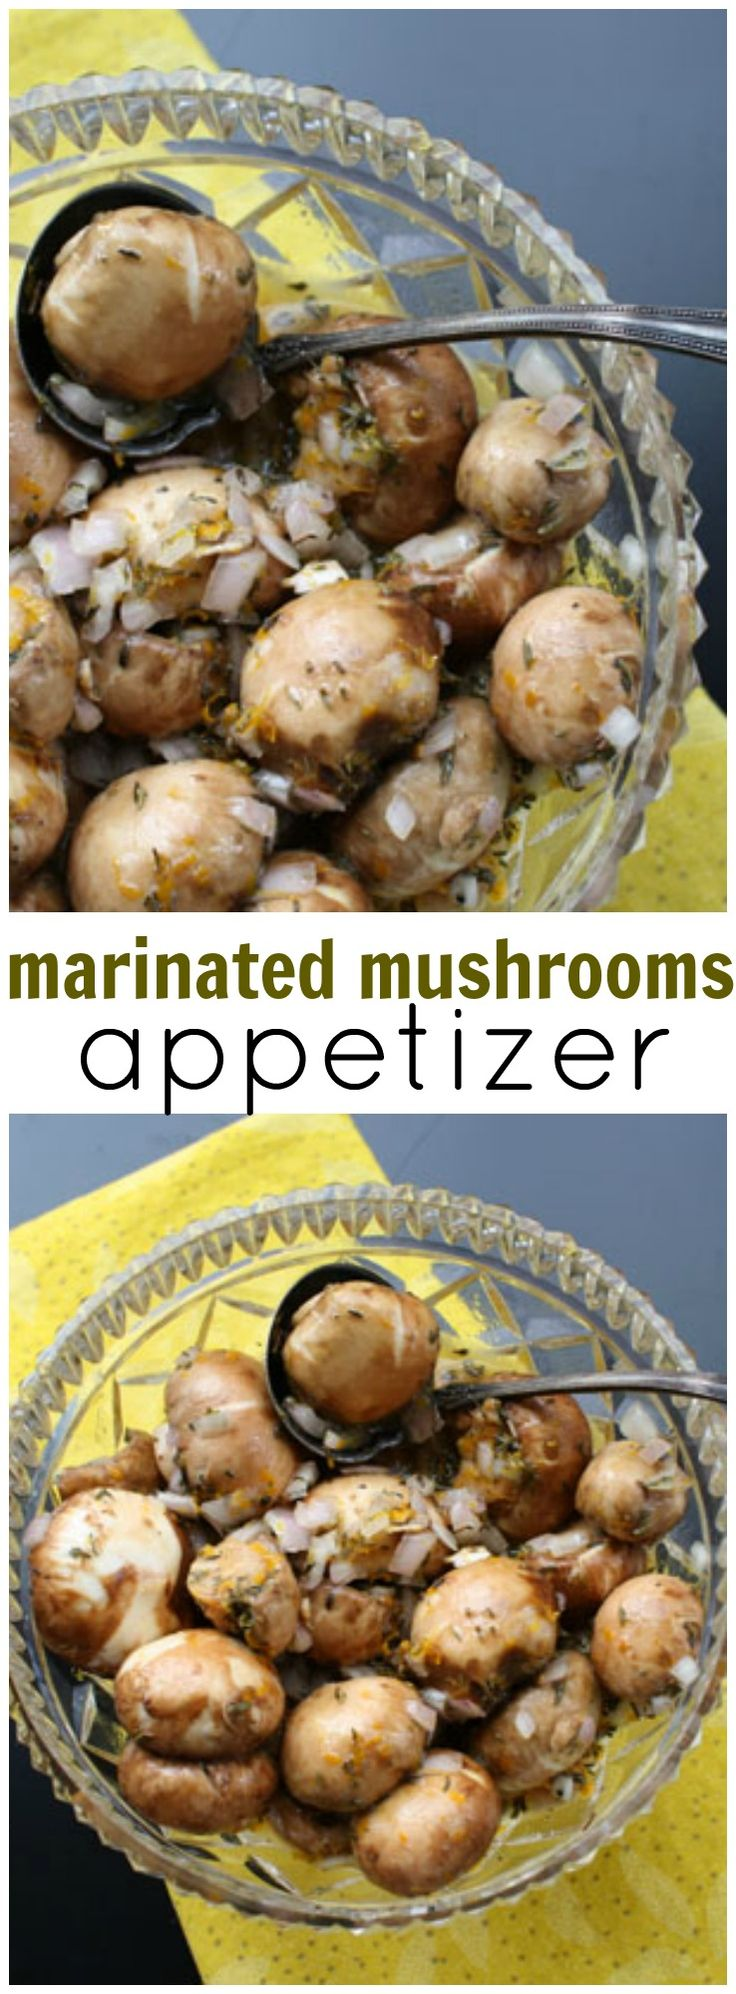 Mushrooms are simply marinated in orange juice, orange zest, shallots and thyme. A beautiful and flavorful marinated mushroom appetizer recipe for your next party. via @lannisam